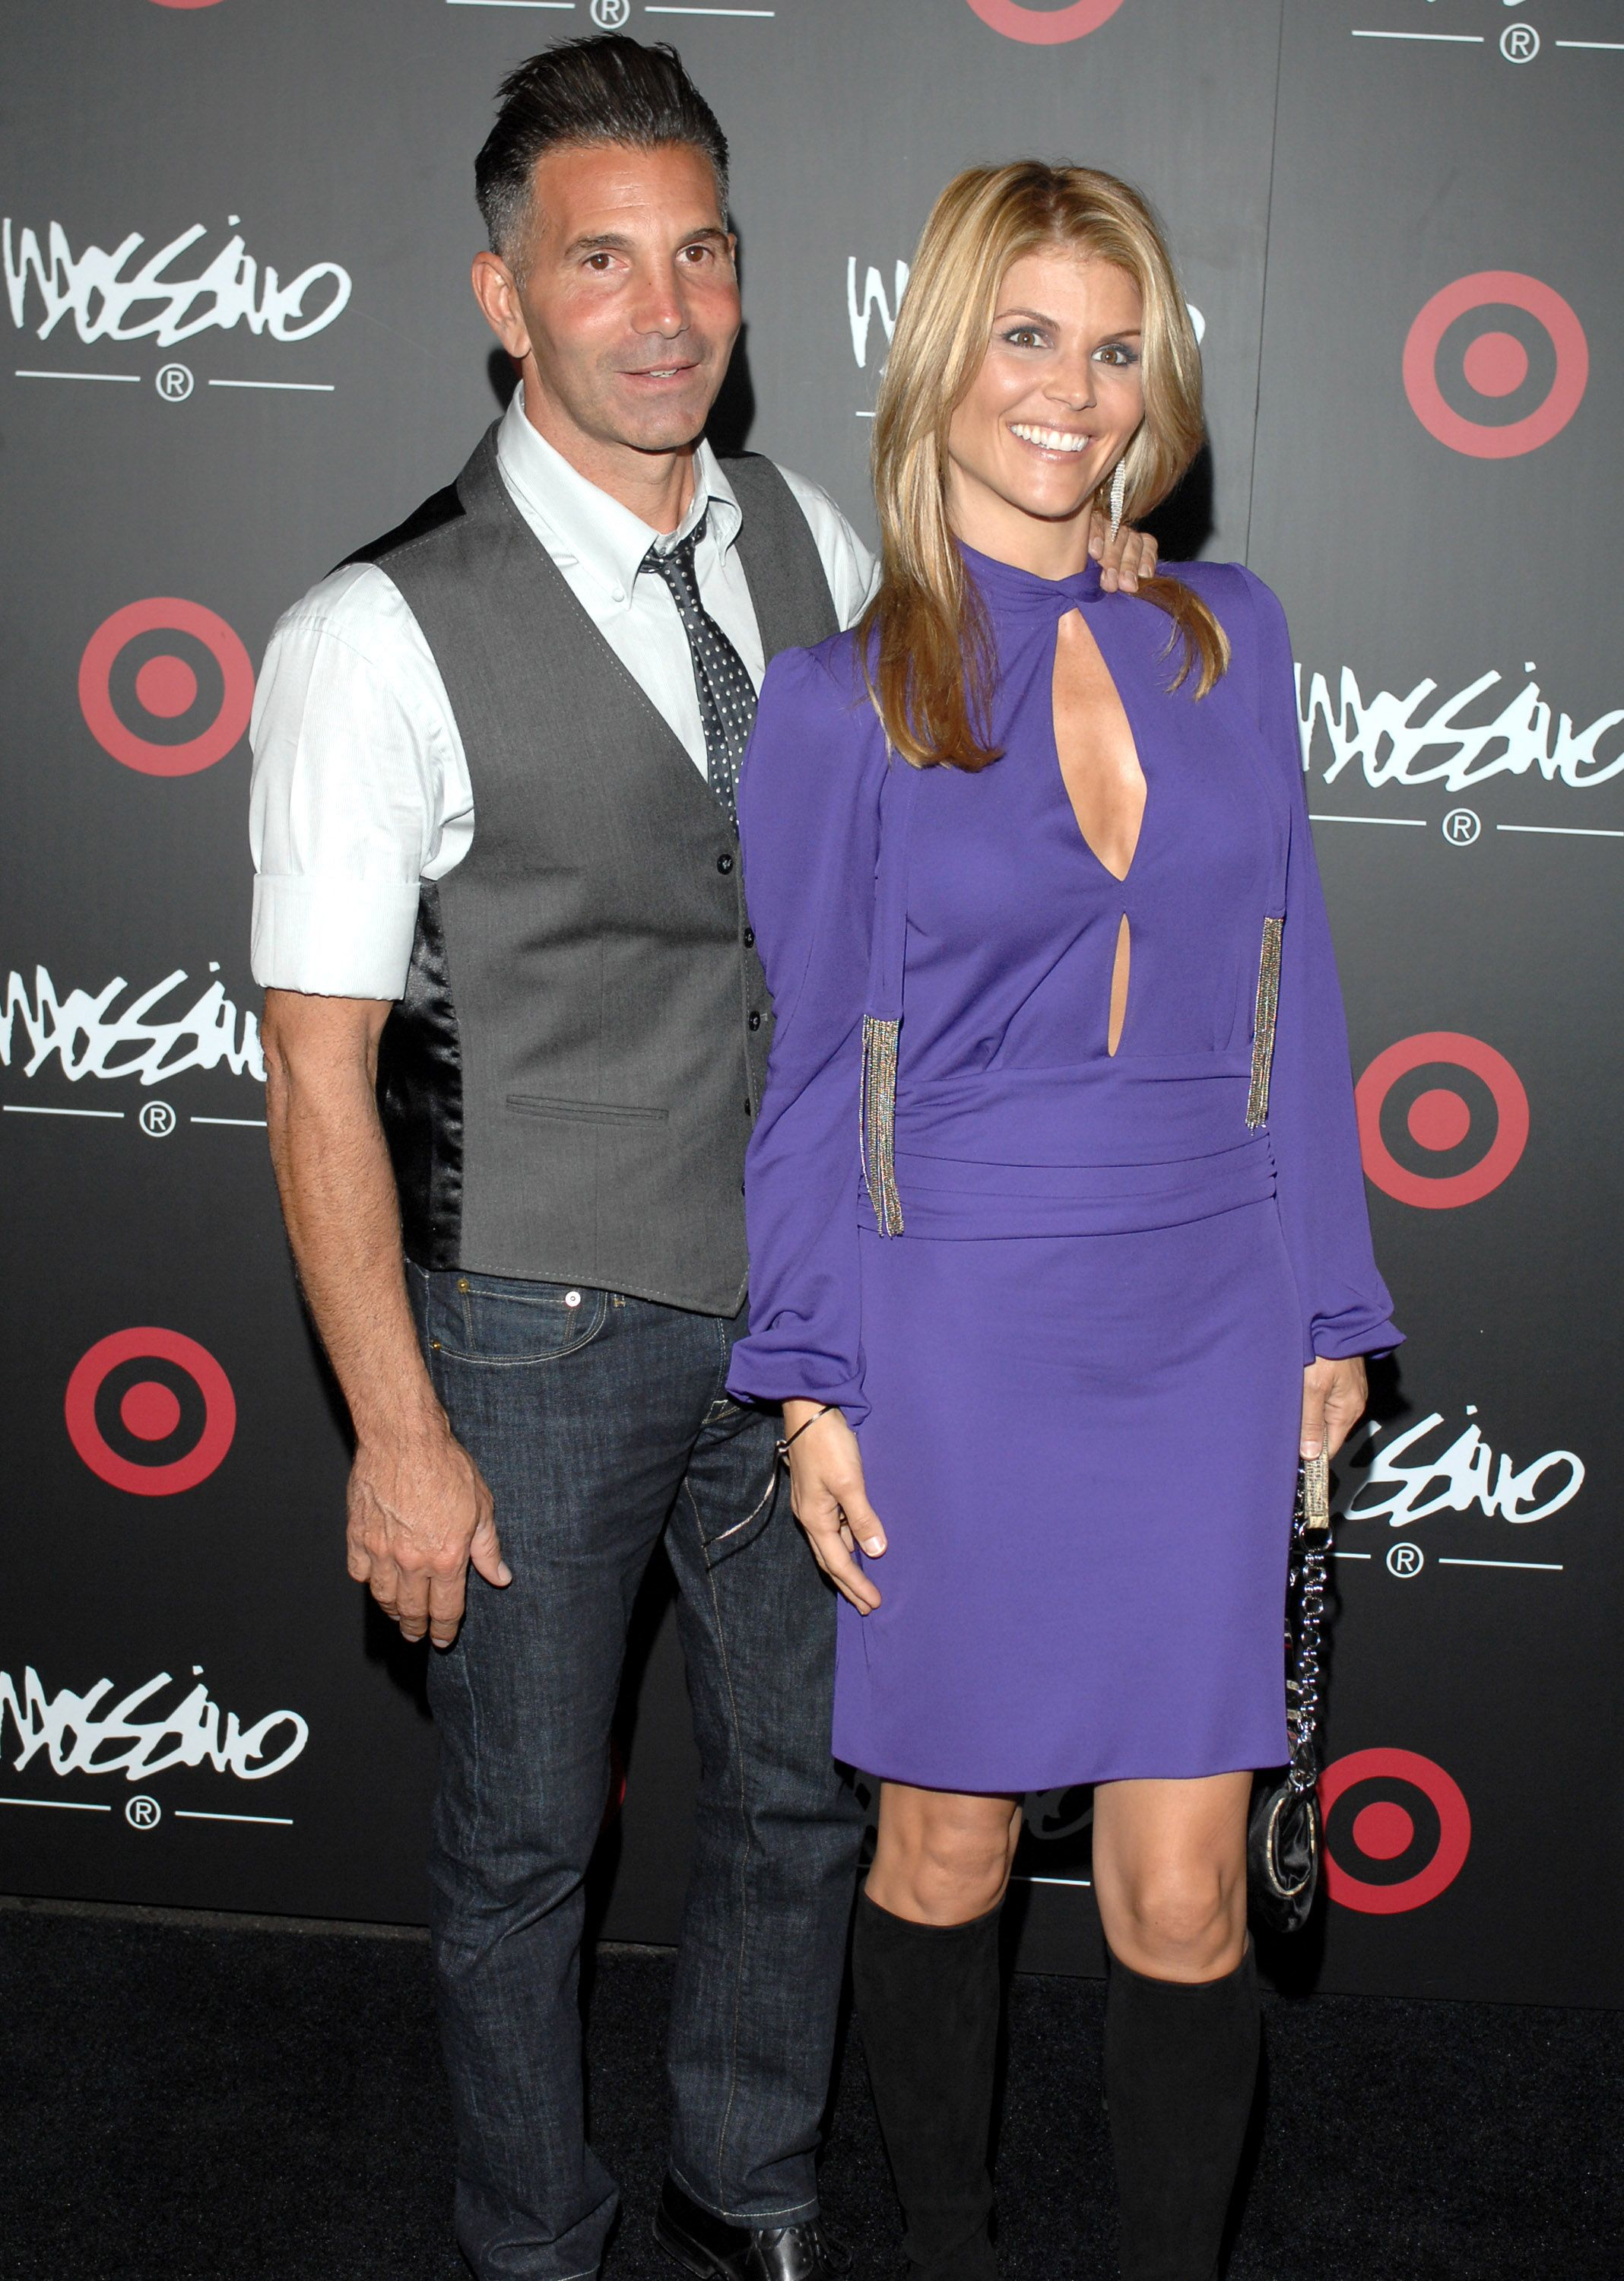 Mossimo Giannulli and Lori Loughlin at the Target Hosts LA Fashion Week Party for Giannulli on October 19, 2006 Photo L. Cohen/WireImage/Getty Images